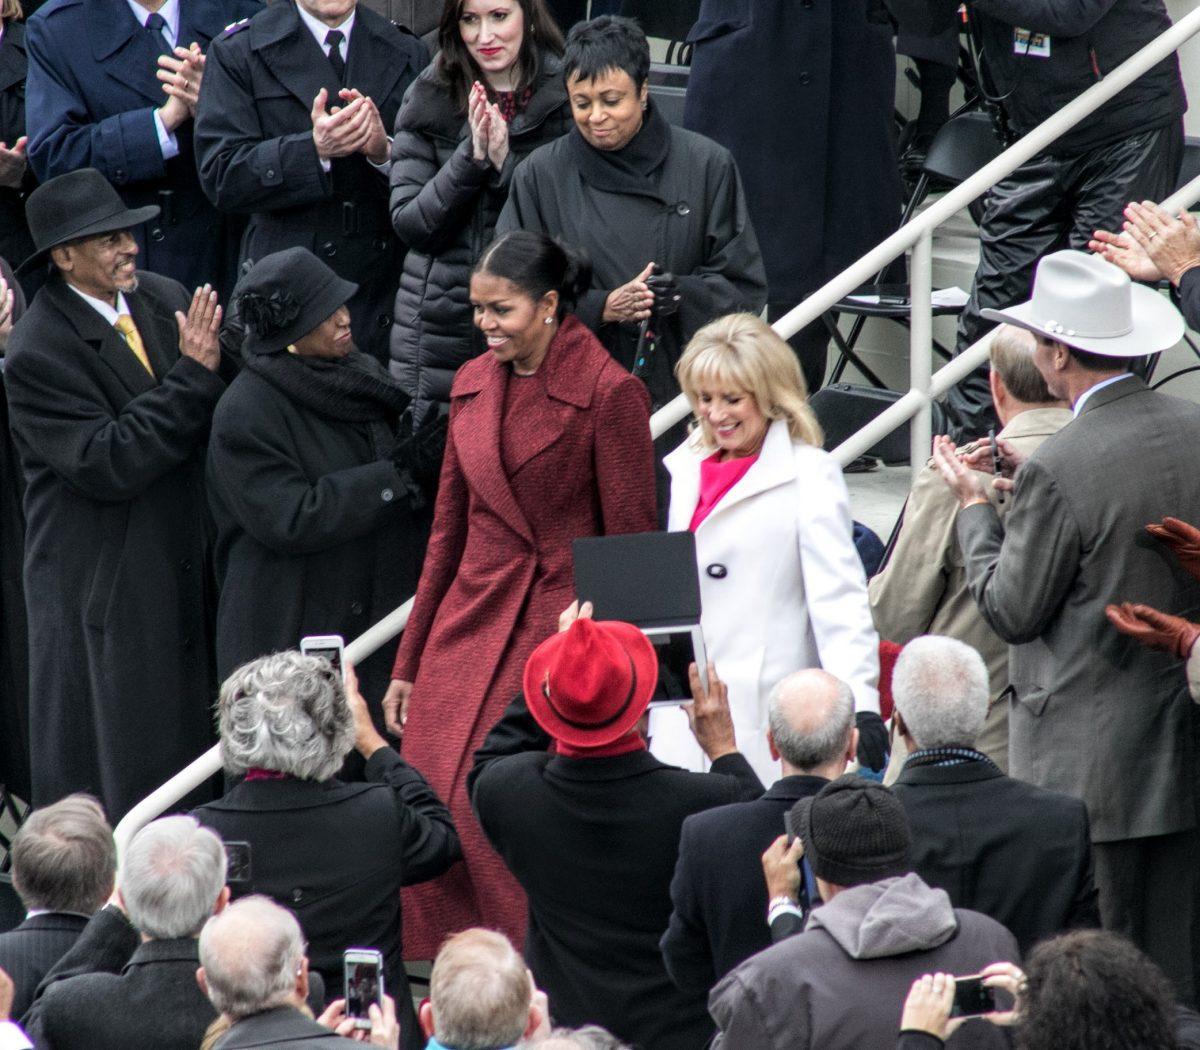 First Lady Michelle Obama and Dr. Jill Bident arrive at the Inauguration of the 45th President. /Photo by Shevry Lassiter